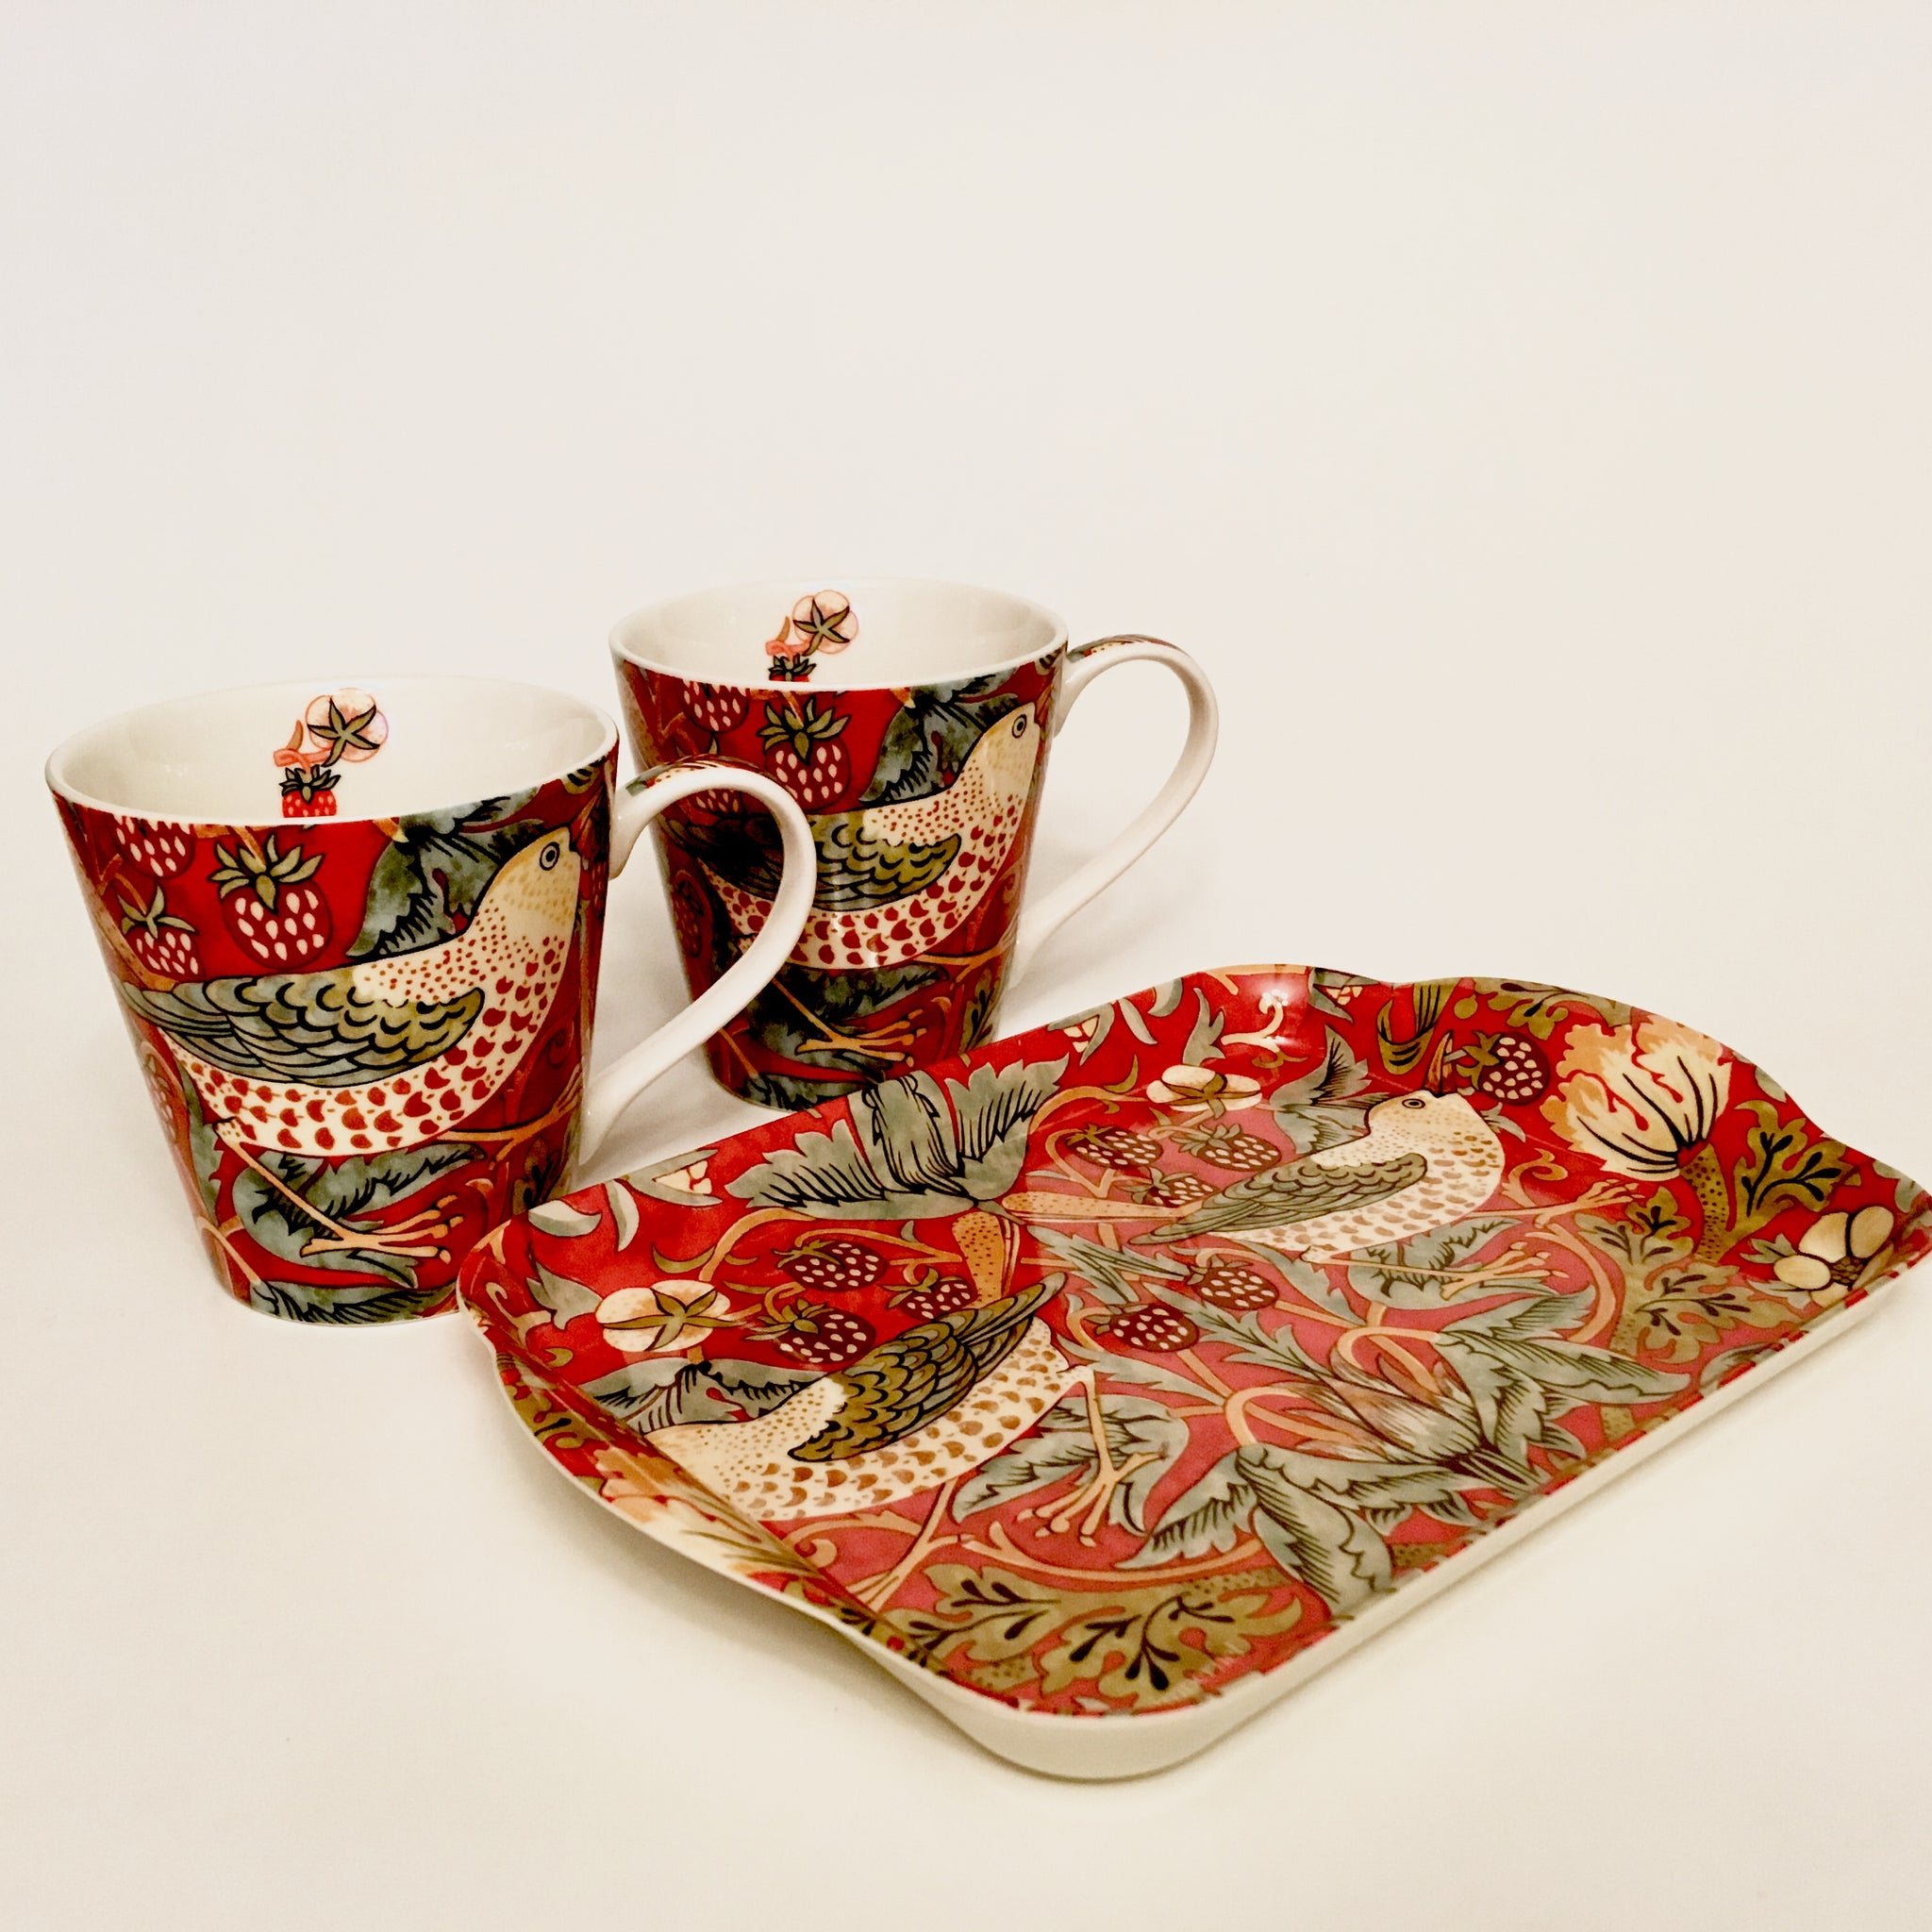 William Morris Two Tea Cups and Tray Set - Strawberry Thief - Red